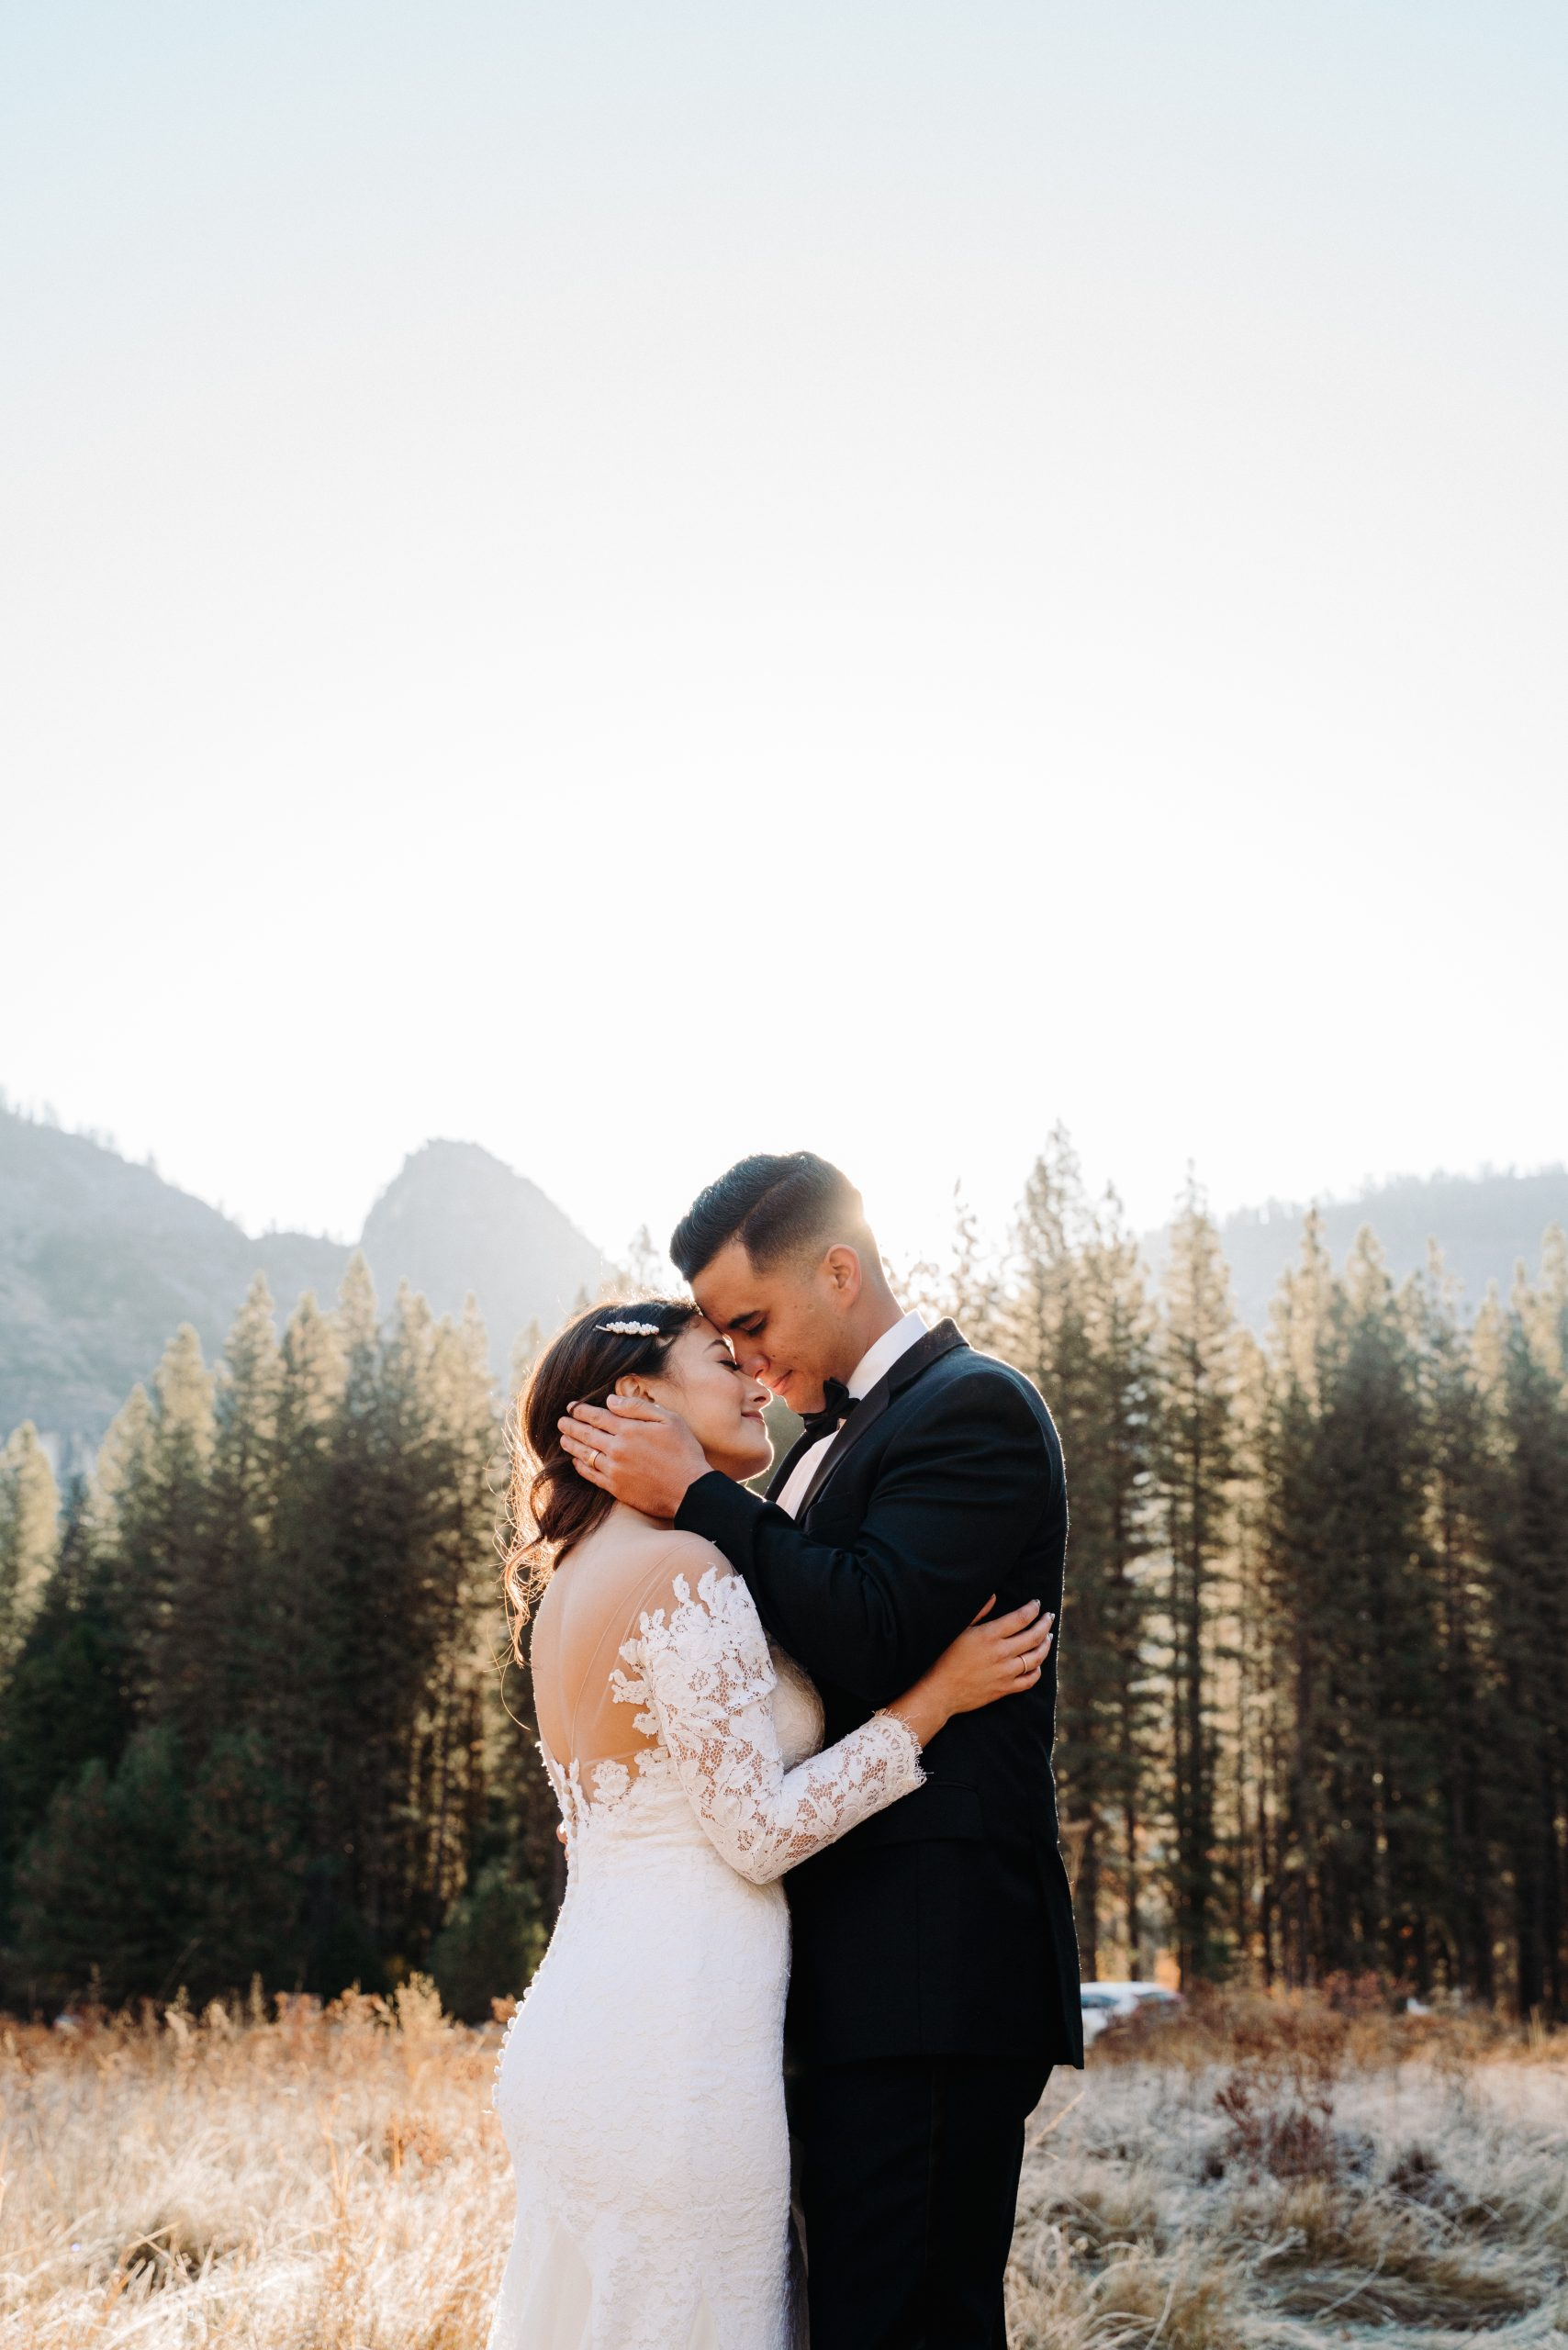 A husband embracing his wife at Yosemite California during their adventurous day-after elopement photo session in their wedding attire.